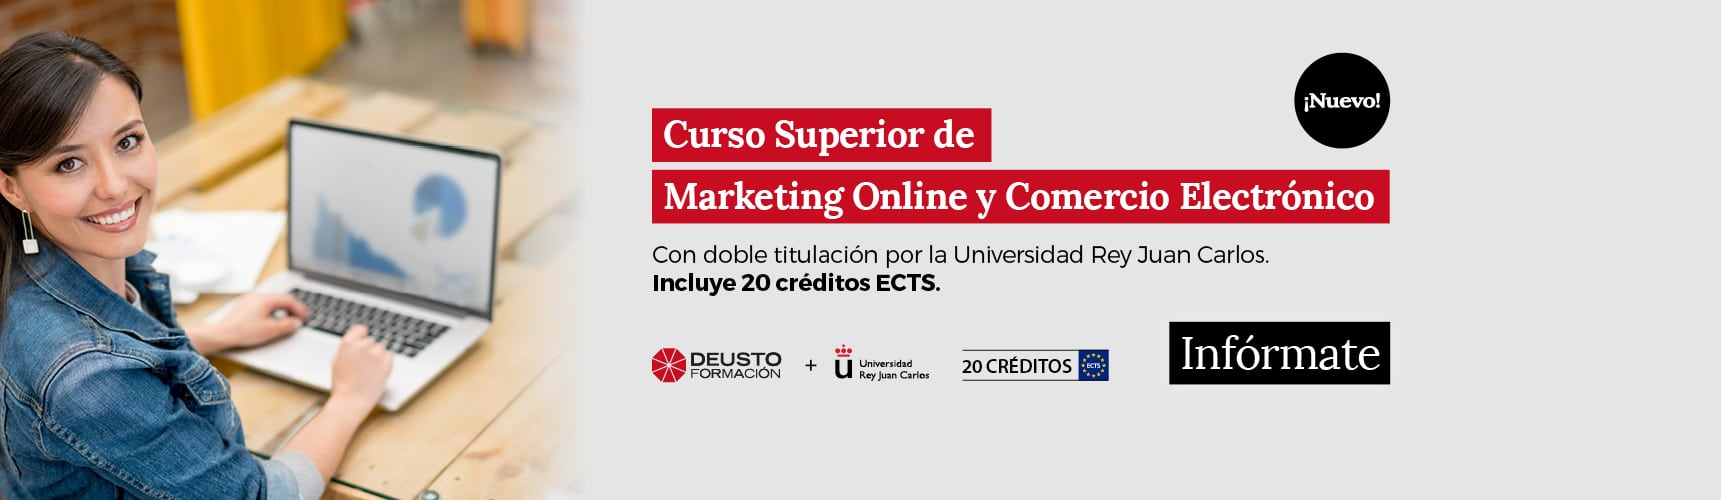 Curso Superior de Marketing Online y Comercio Electrónico